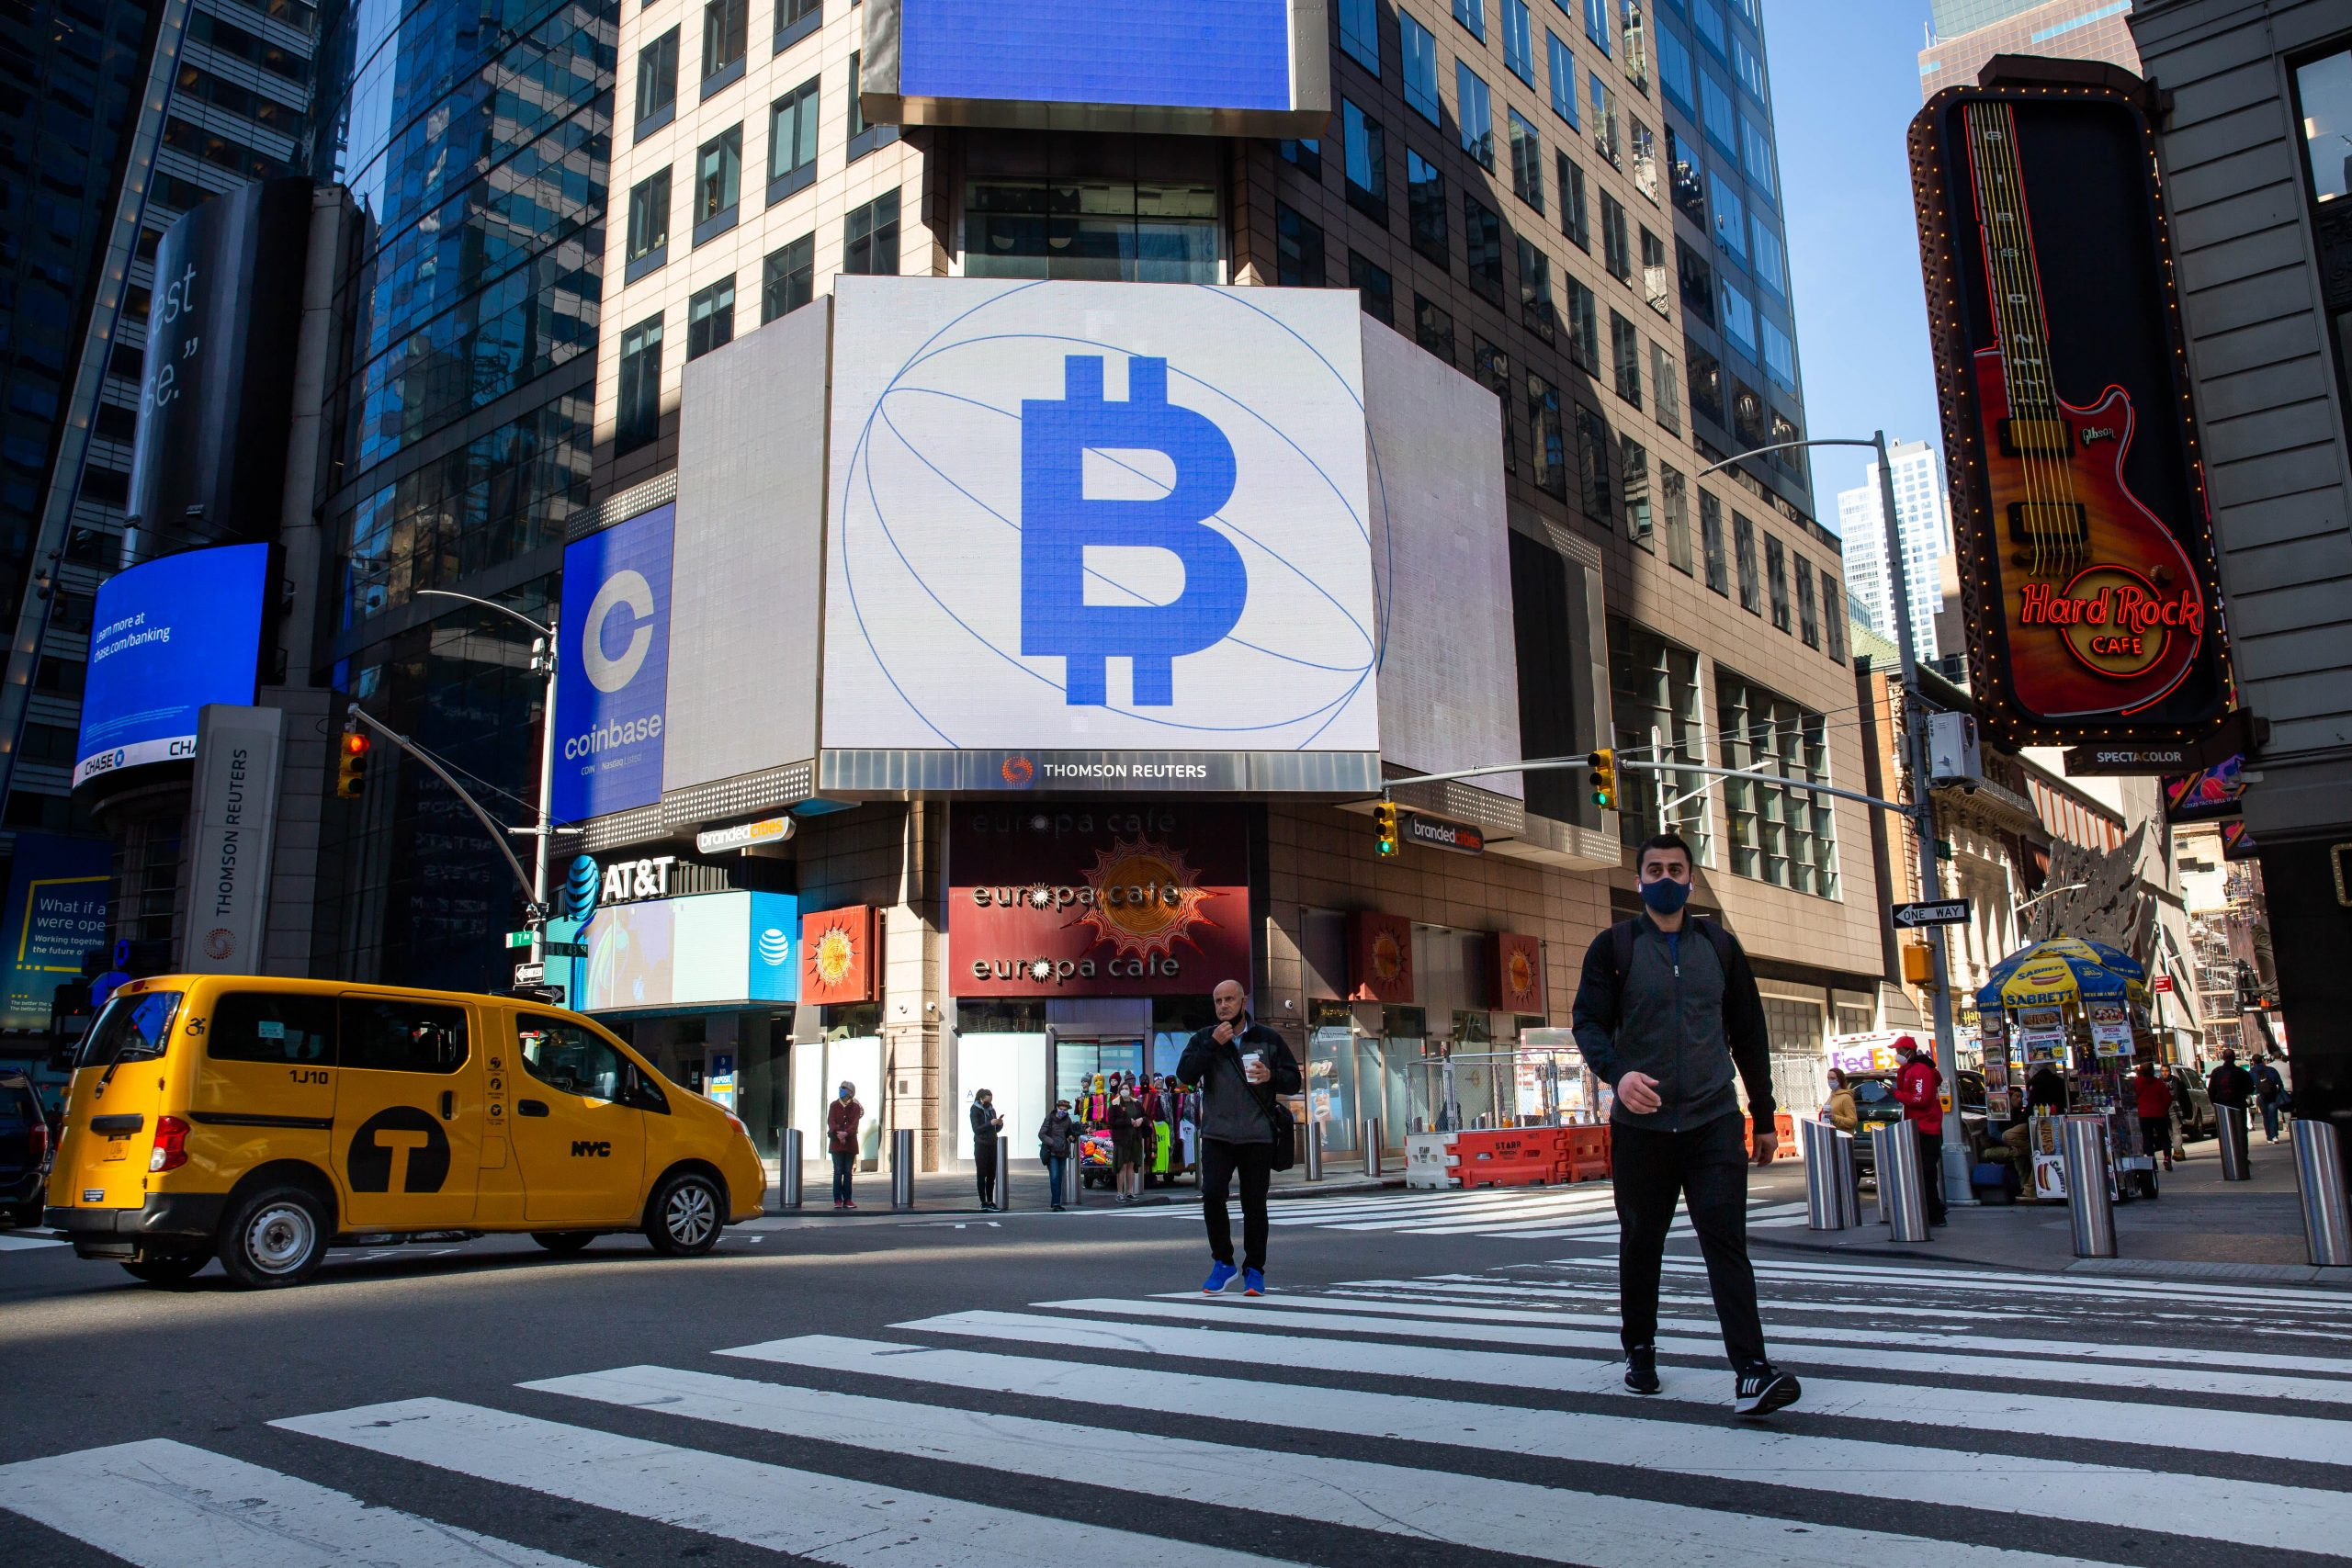 Bitcoin is bubble, but oil is most ignored bull market, Rich Bernstein says